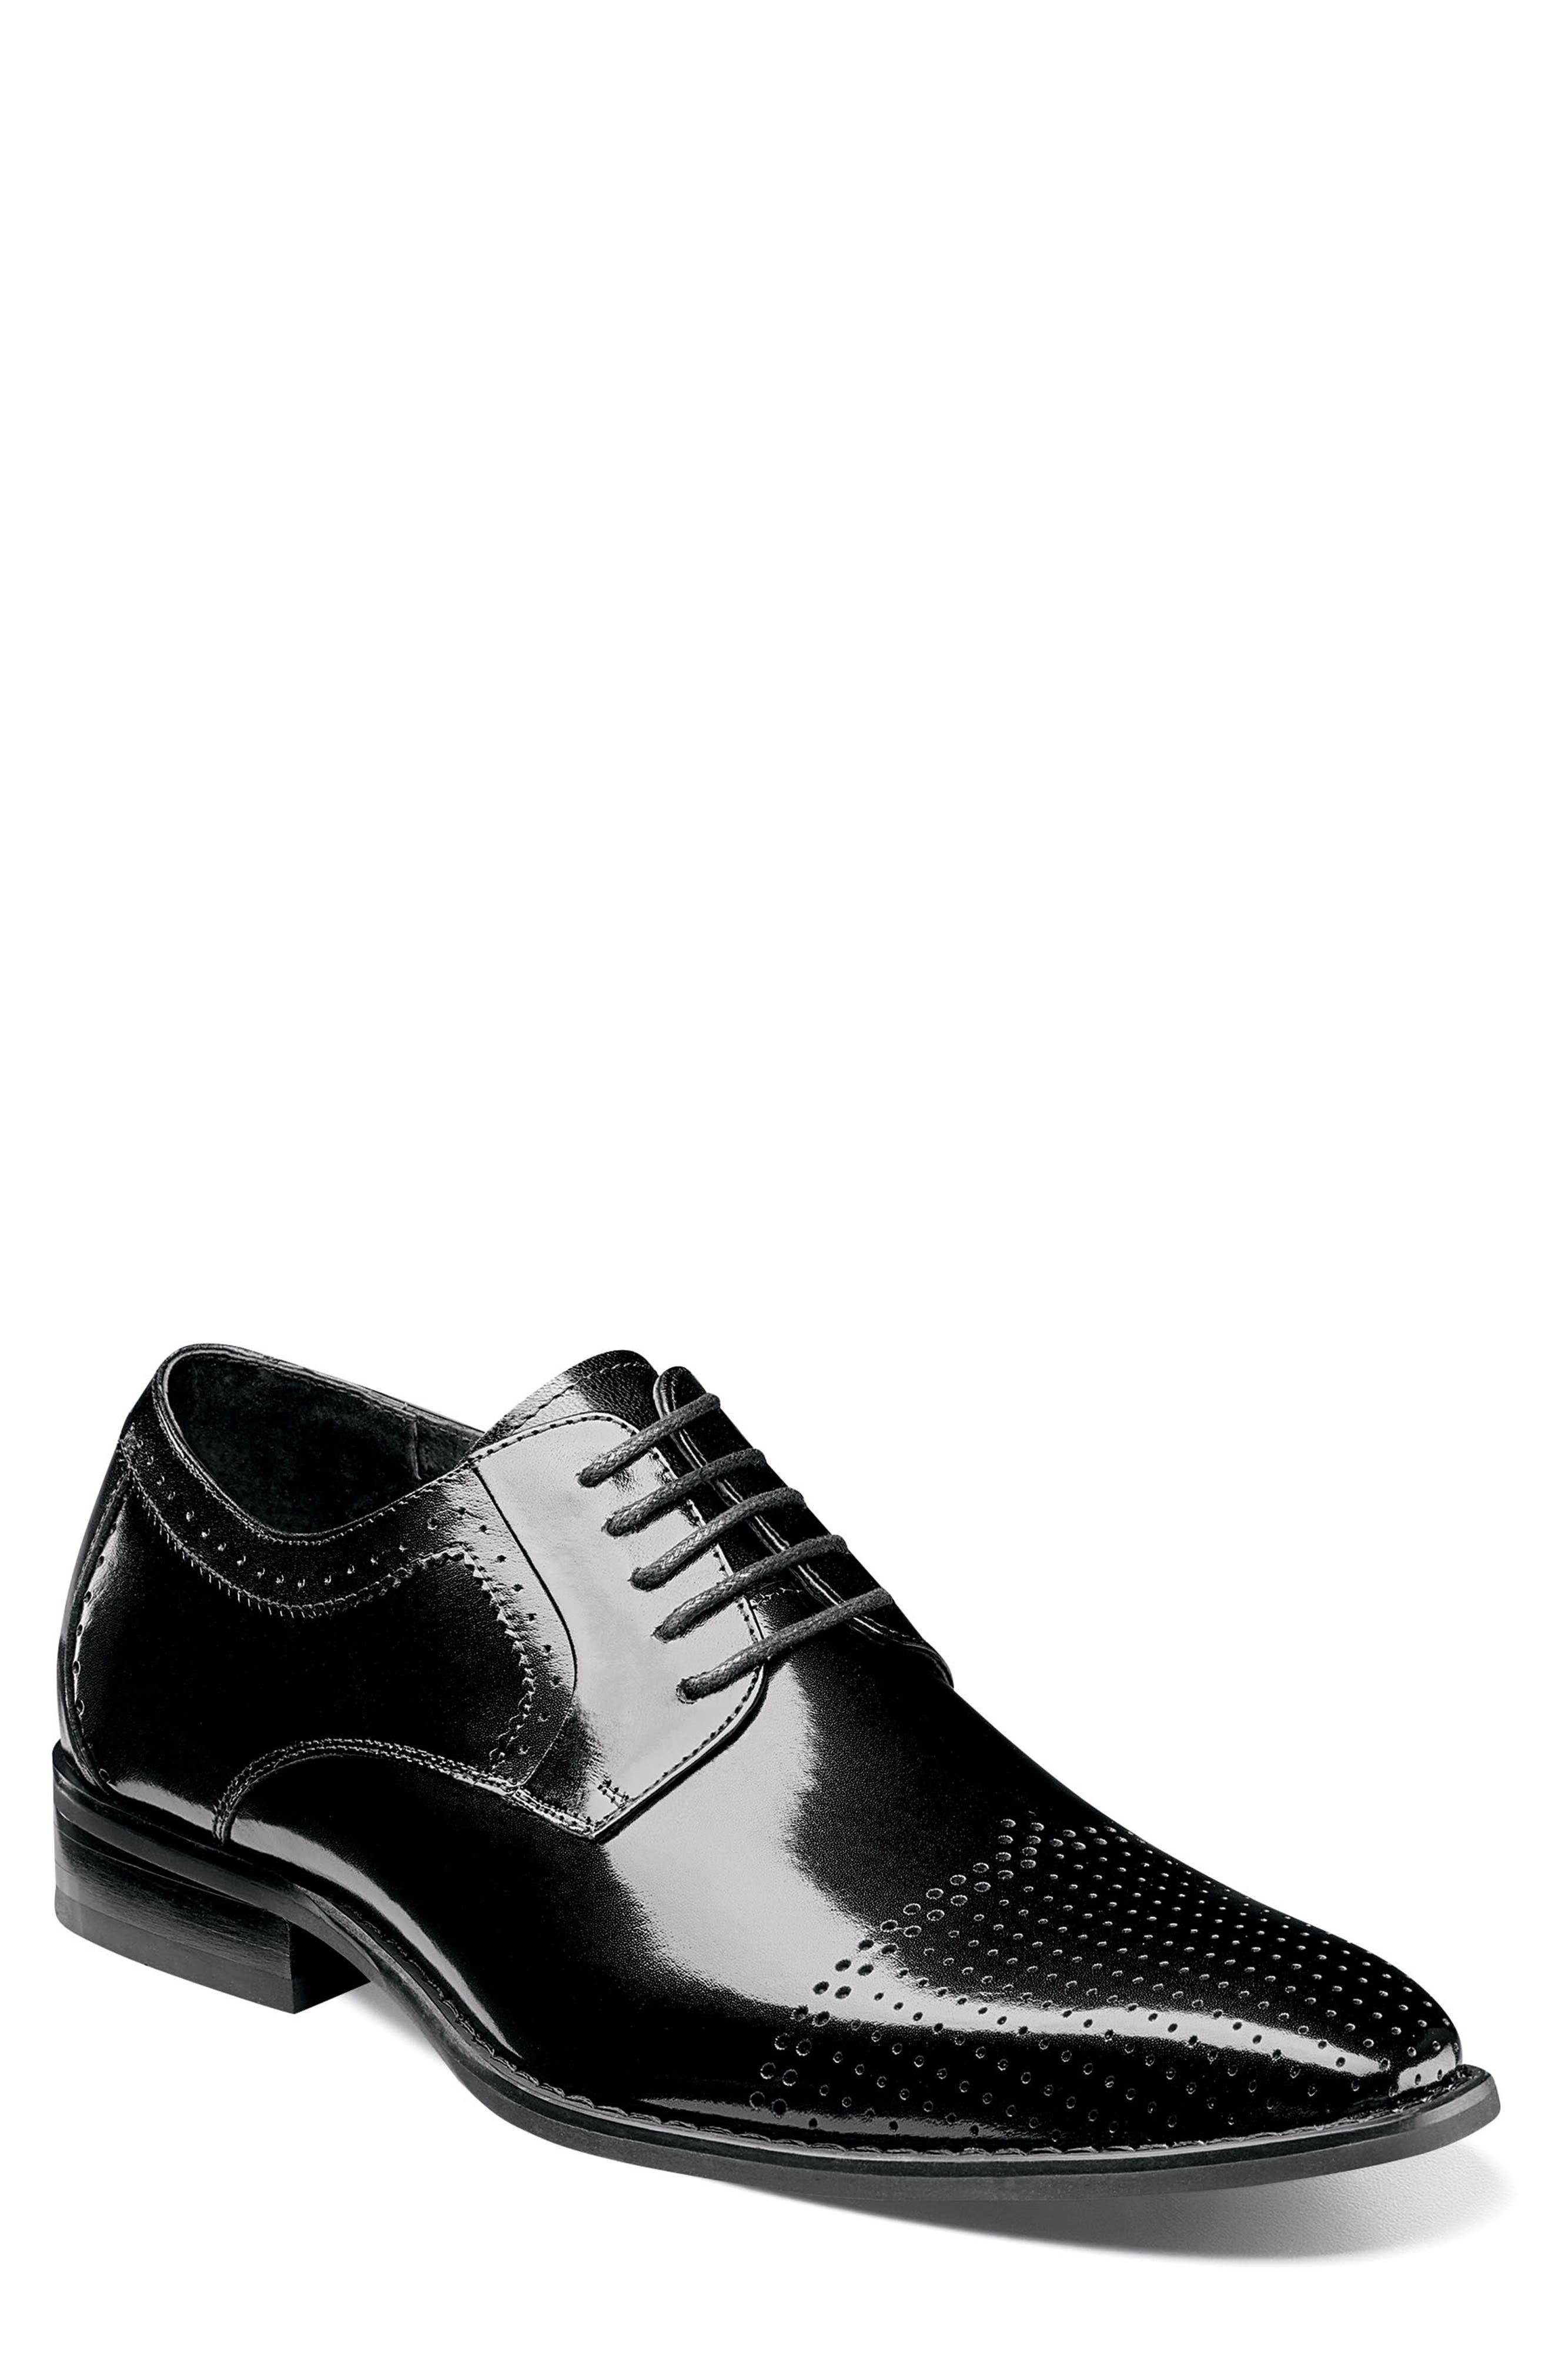 Sanborn Perforated Cap Toe Derby,                             Main thumbnail 1, color,                             BLACK LEATHER